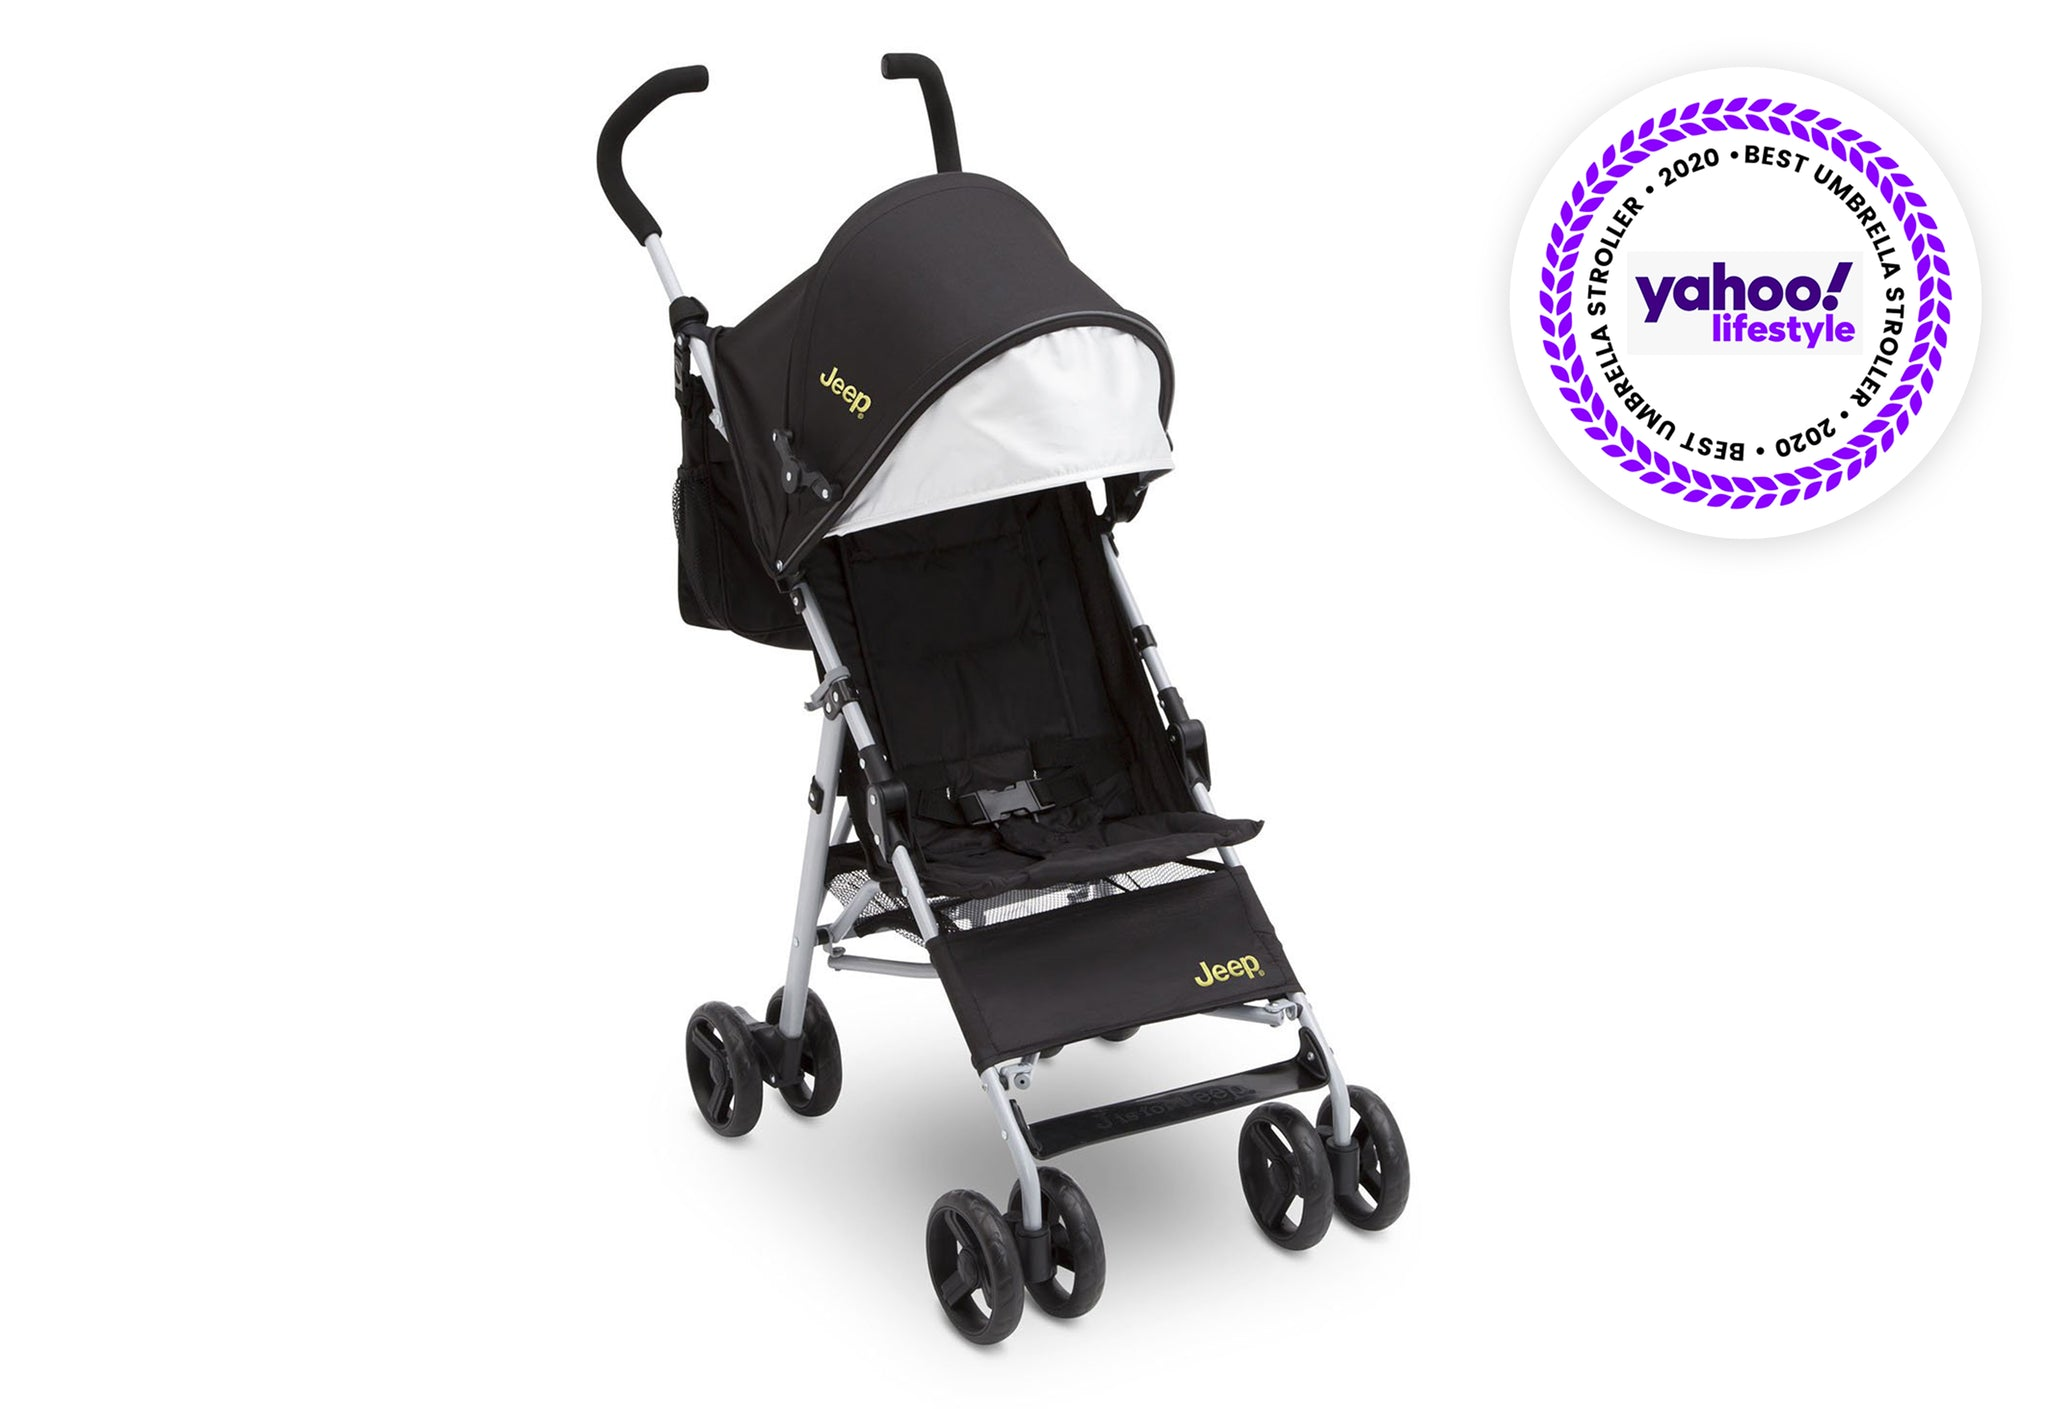 Jeep North Star Stroller by Delta Children, Black with Mellow Yellow (731), with padded seat